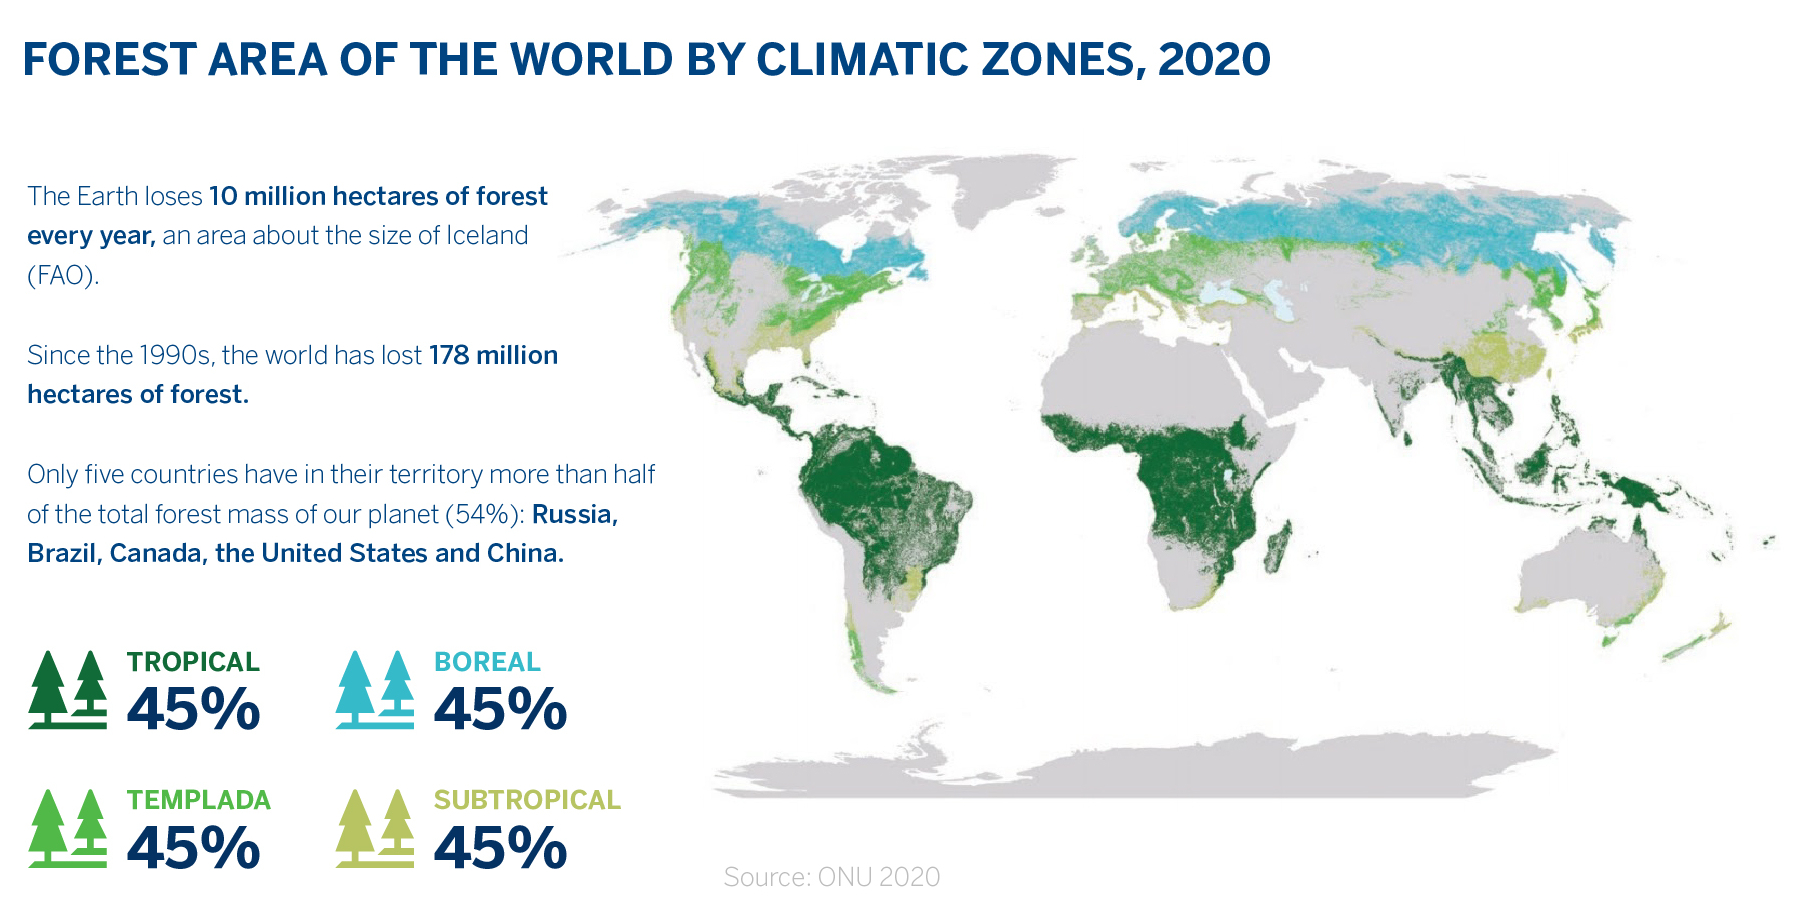 BBVA-OpenMind-Dory Gascuena-Forest area of the world by climatic zones 2020